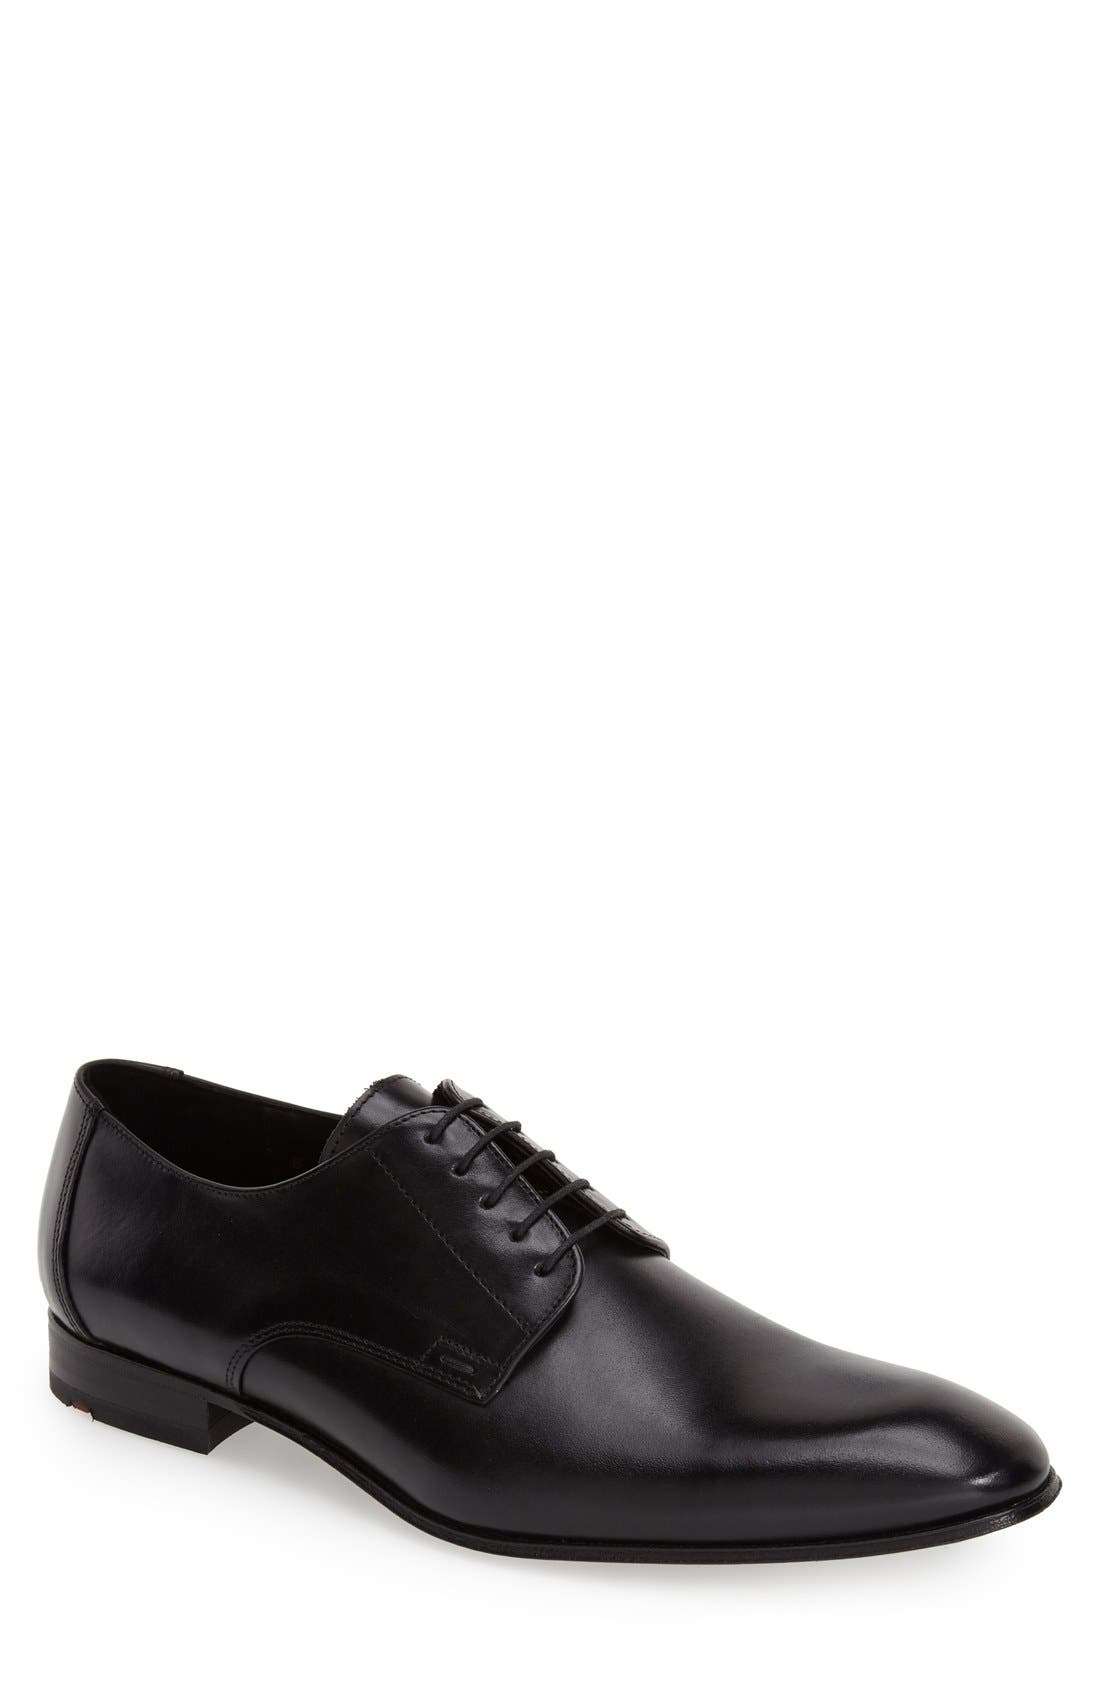 'Laurin' Plain Toe Derby,                             Main thumbnail 1, color,                             Black